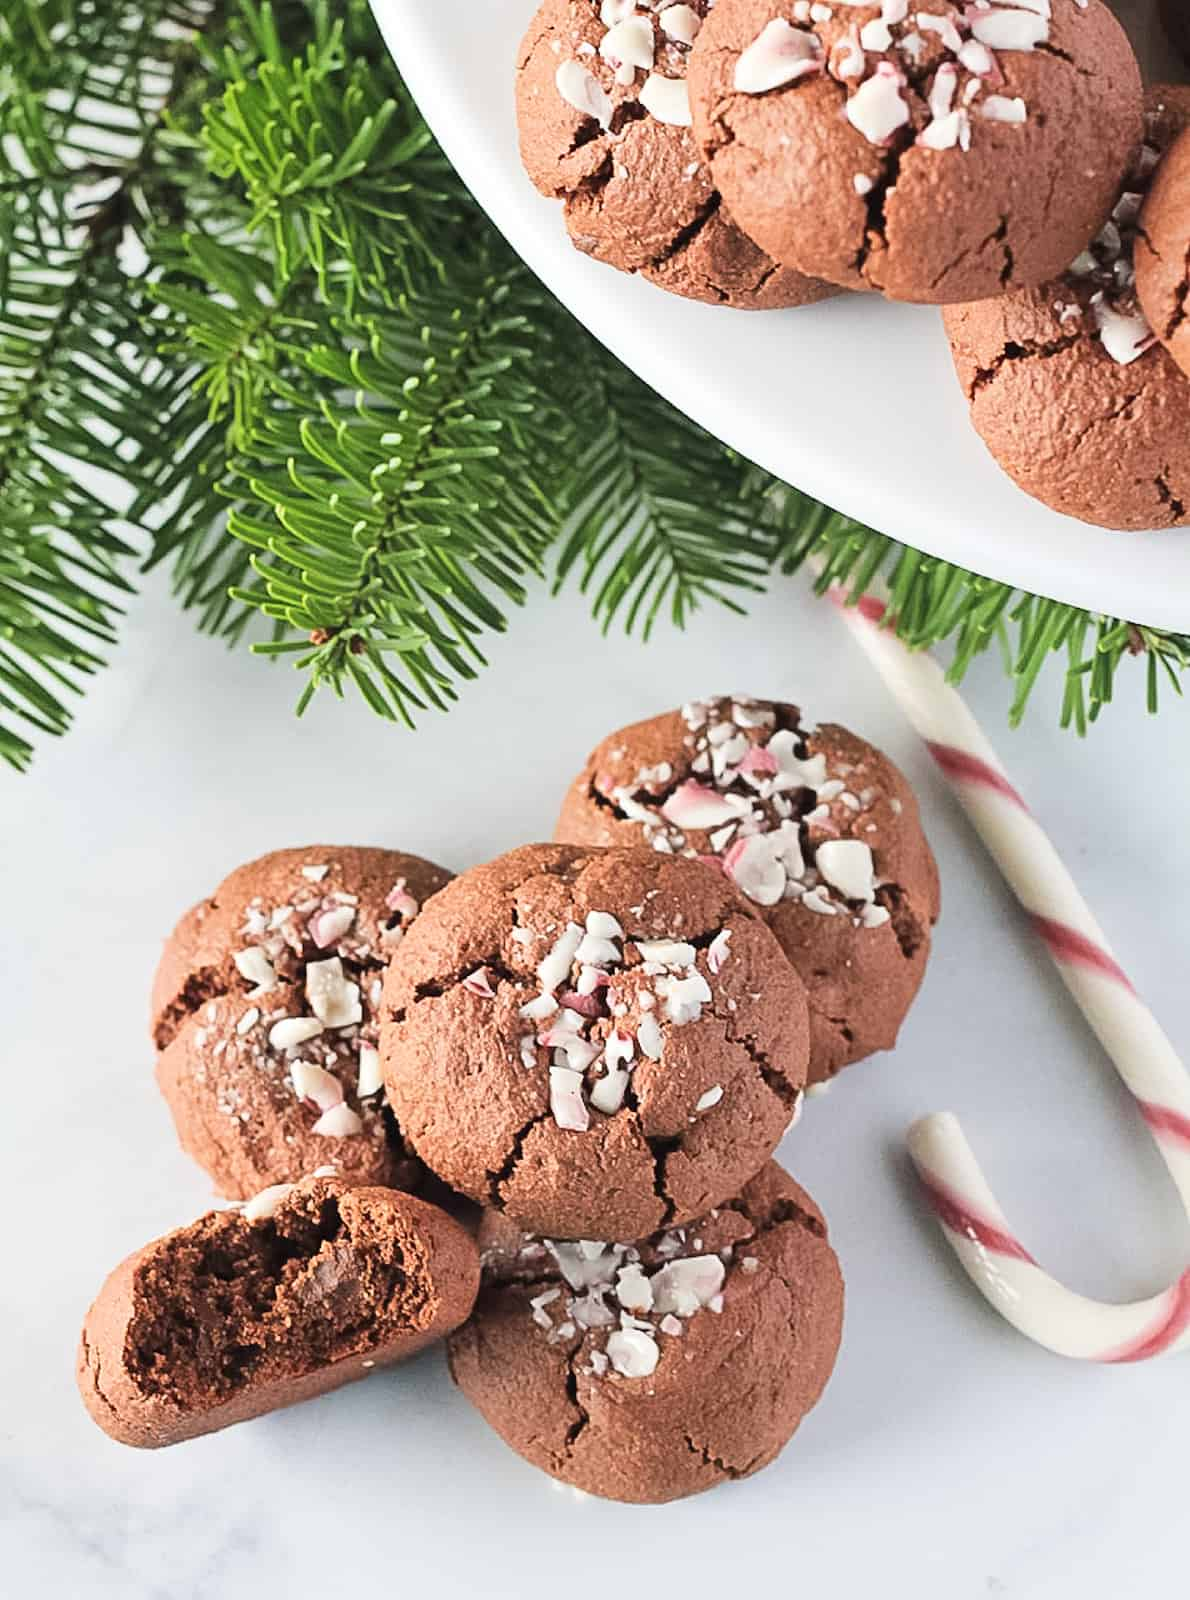 White plate and stack of double chocolate cookies with candy cane topping. Pine branch and bite out of cookie.